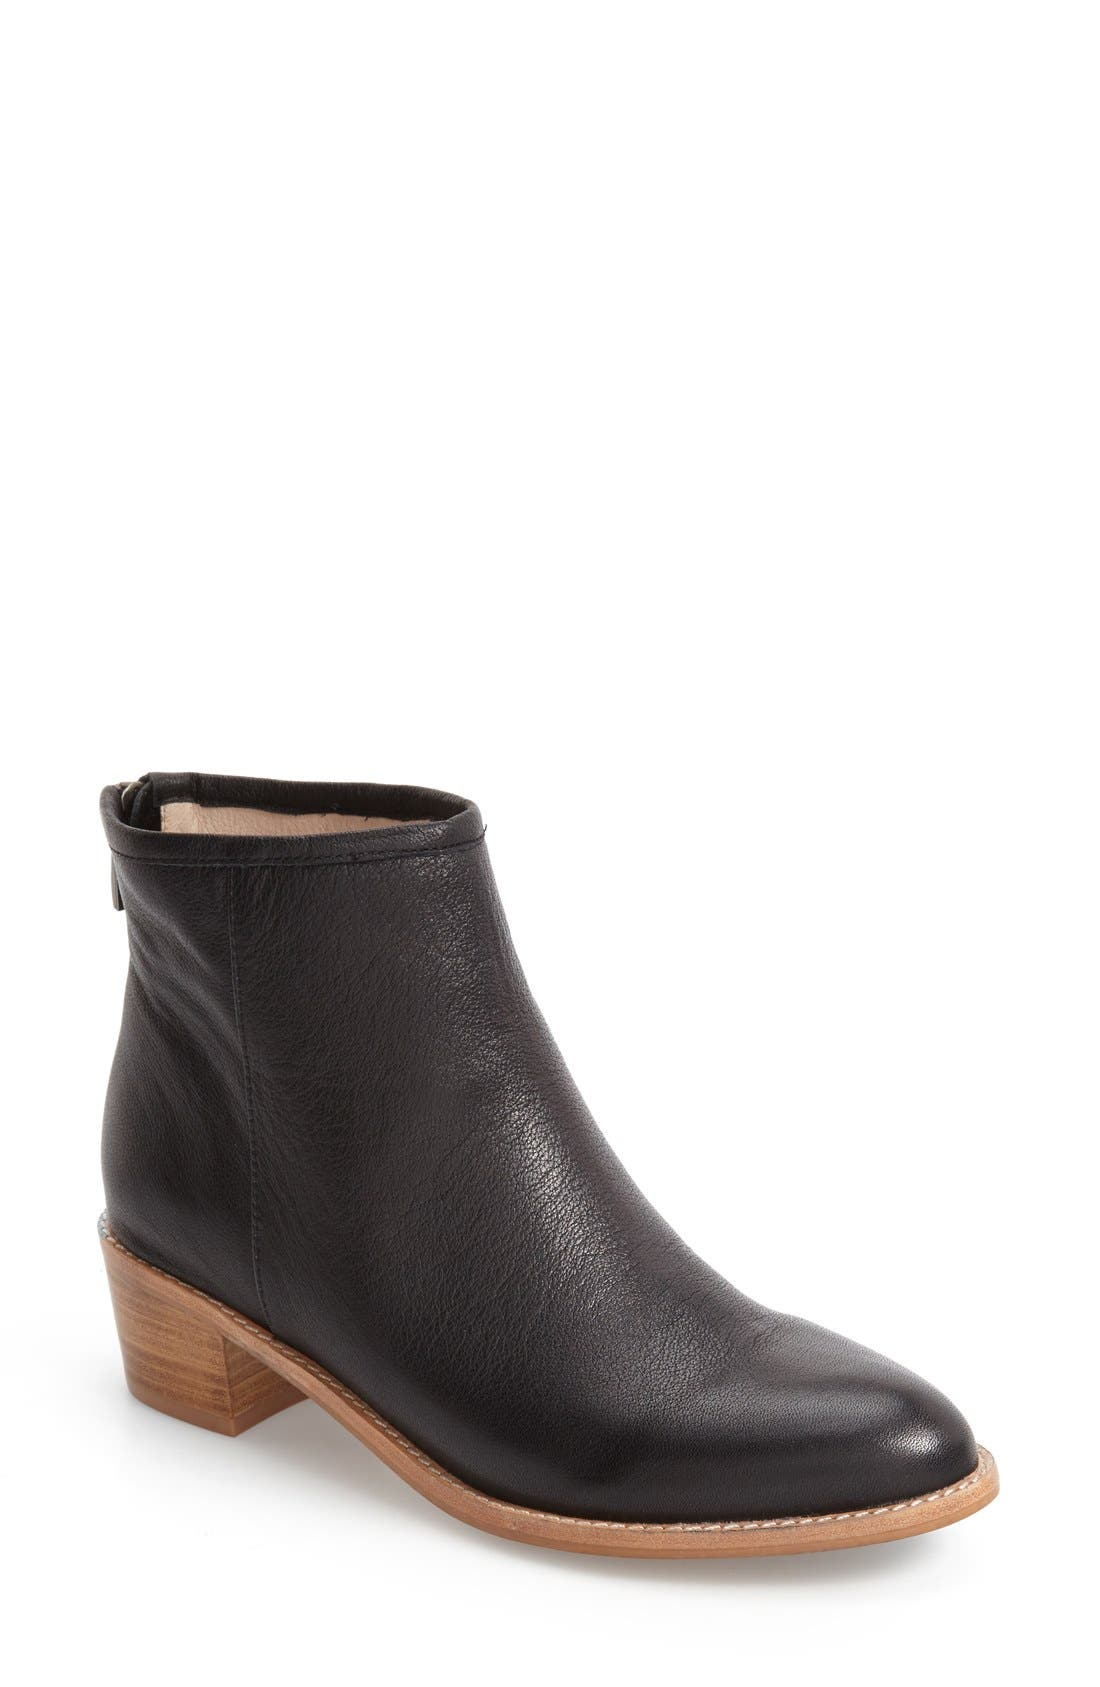 Mae Bootie,                         Main,                         color, Black Leather